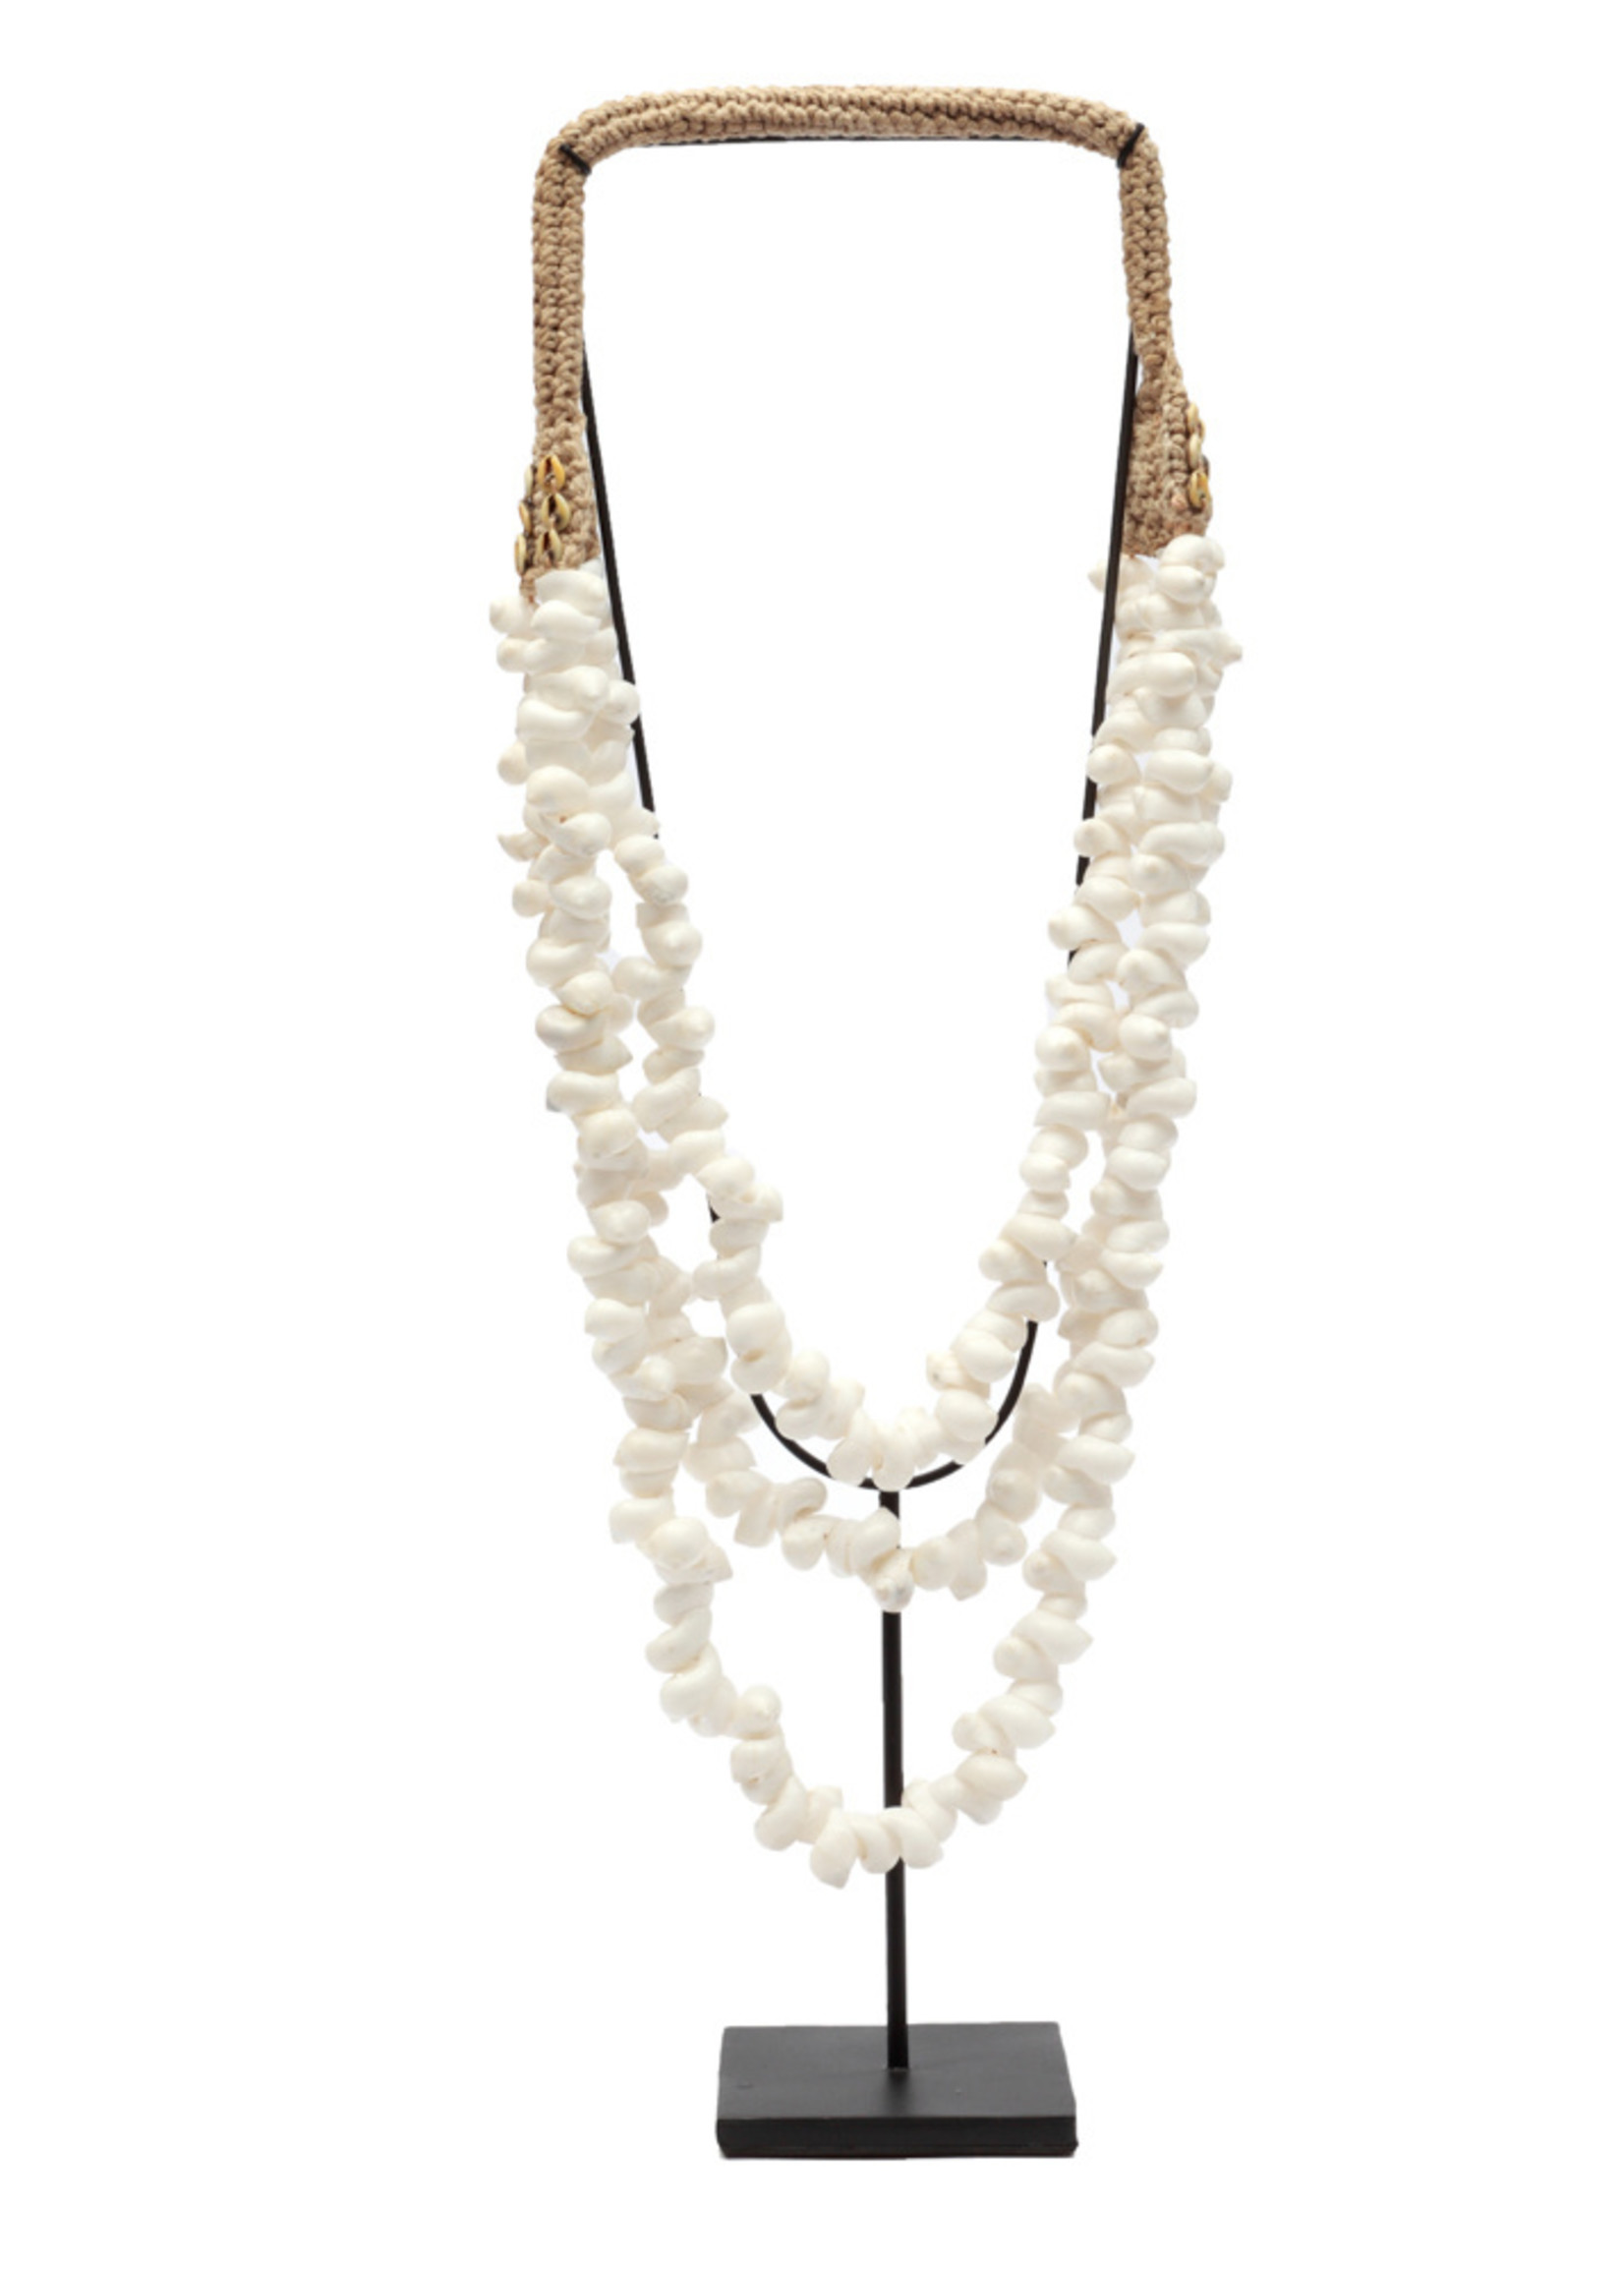 The White Coastal Shell Necklace on Stand